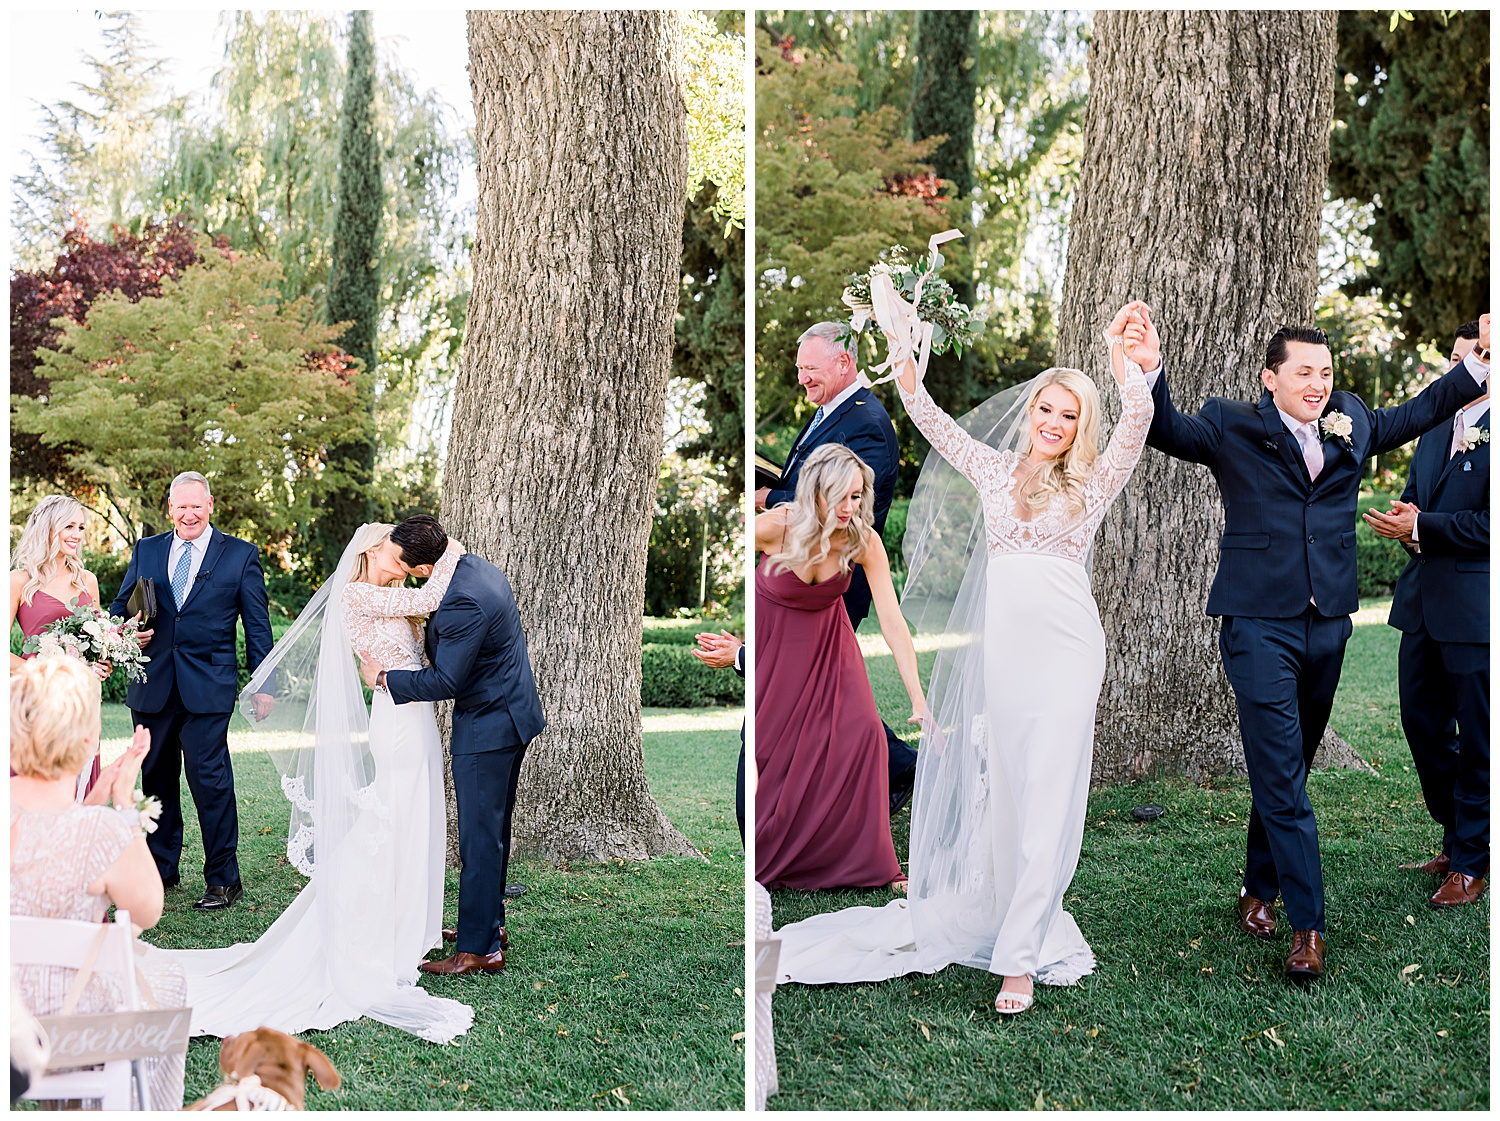 Janine_Licare_Photography_San_Francisco_Wedding_Photographer_Carneros_Tyge_Williams_Sonoma_Napa_0230.jpg